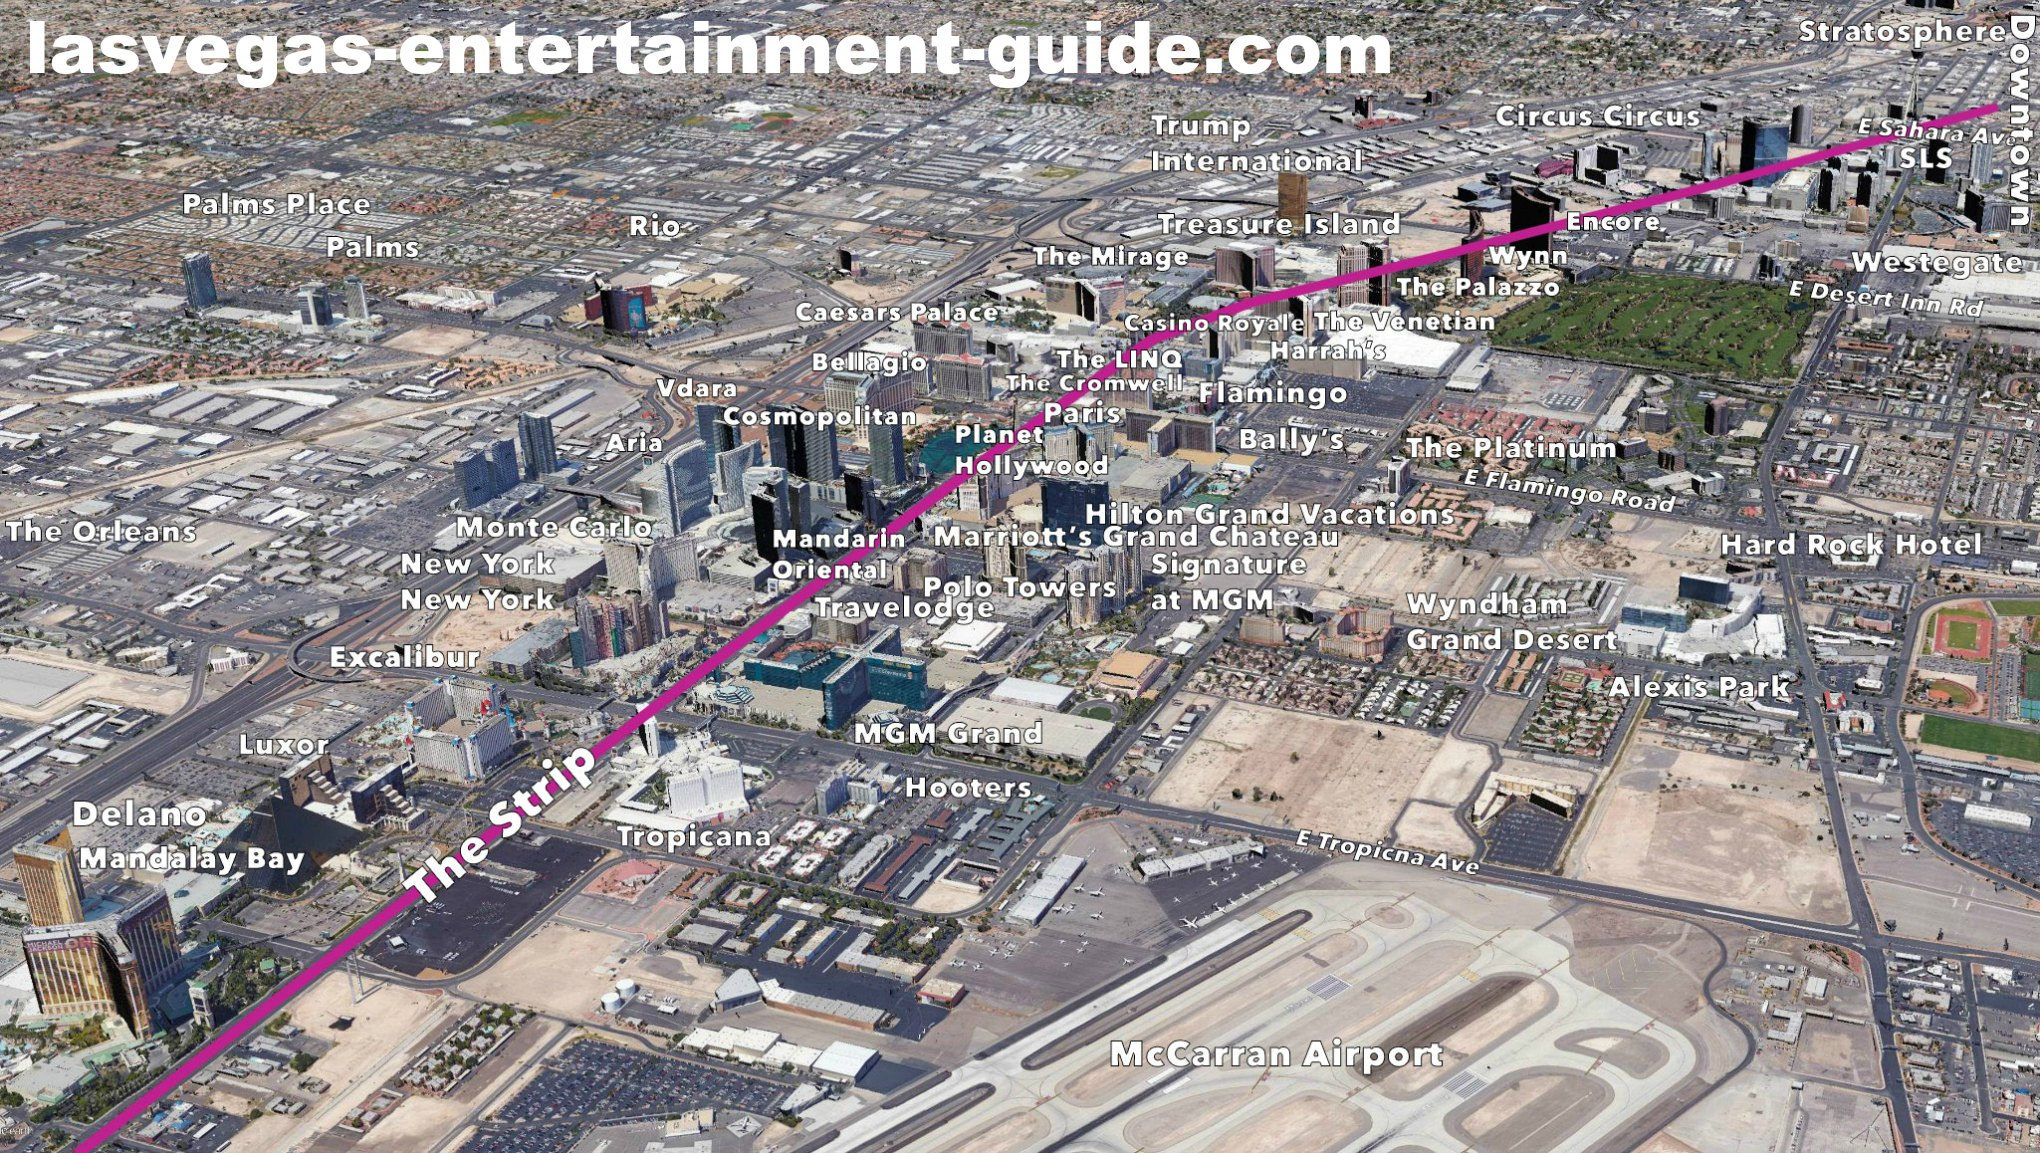 las vegas strip hotels map print map in jpg. las vegas strip hotels map